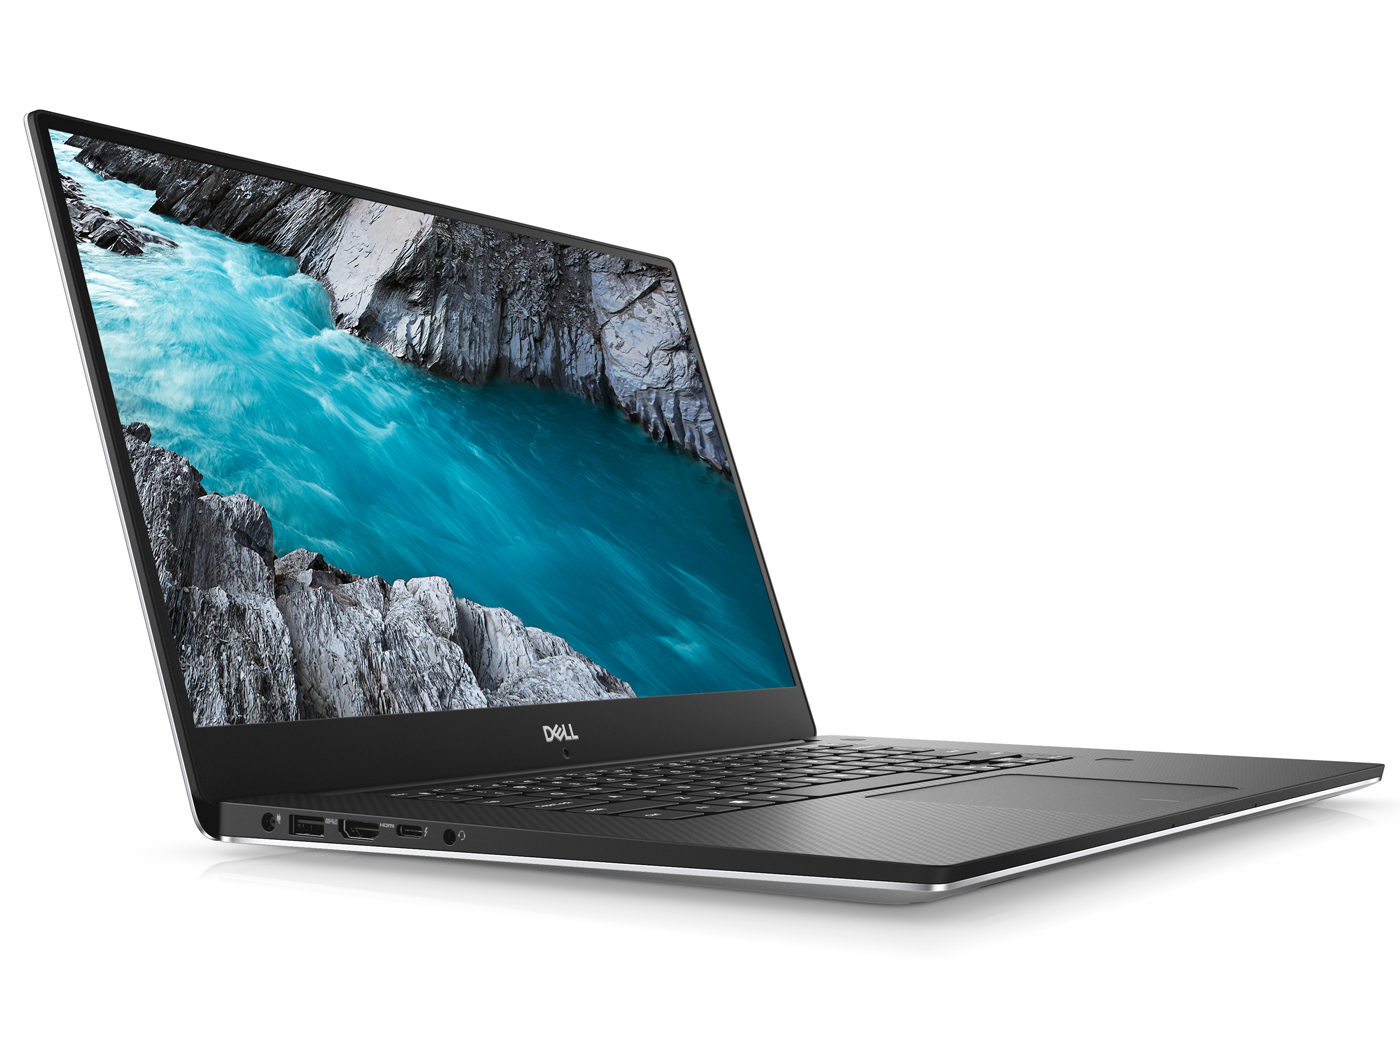 Dell XPS 15 9570 (i7, UHD, GTX 1050 Ti Max-Q) Laptop Review